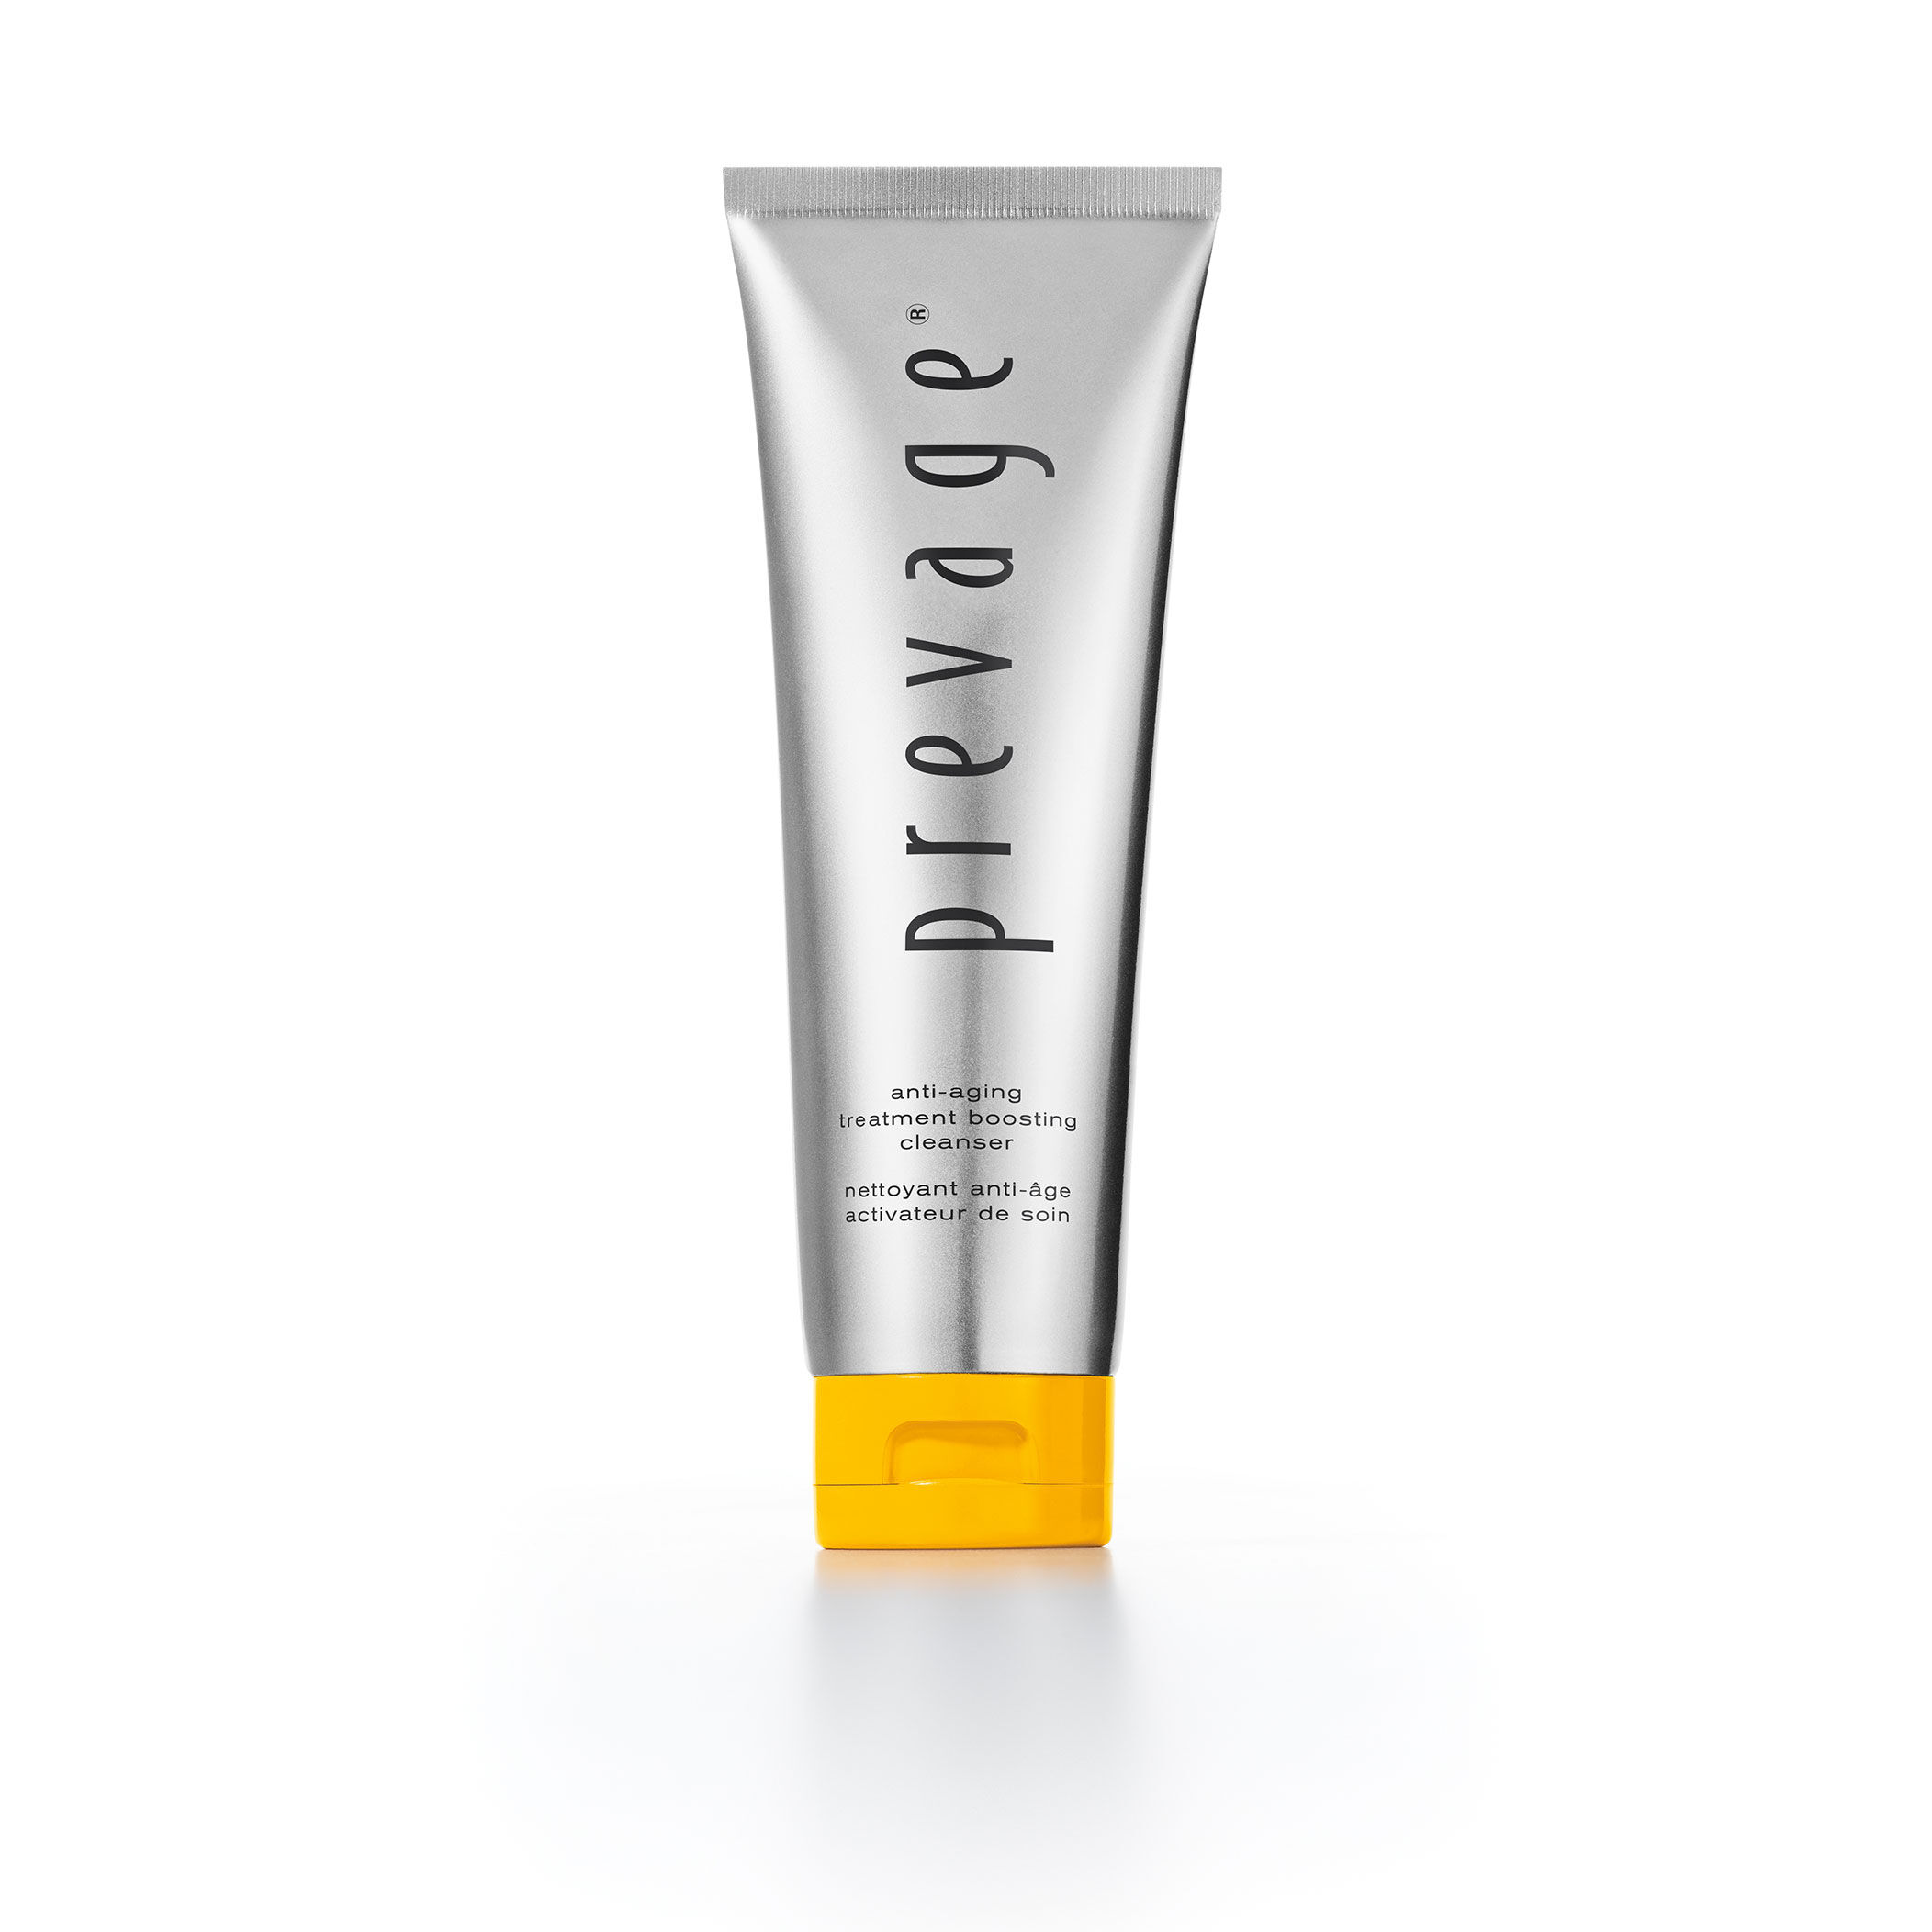 PREVAGE Anti-Aging Treatment Boosting Cleanser